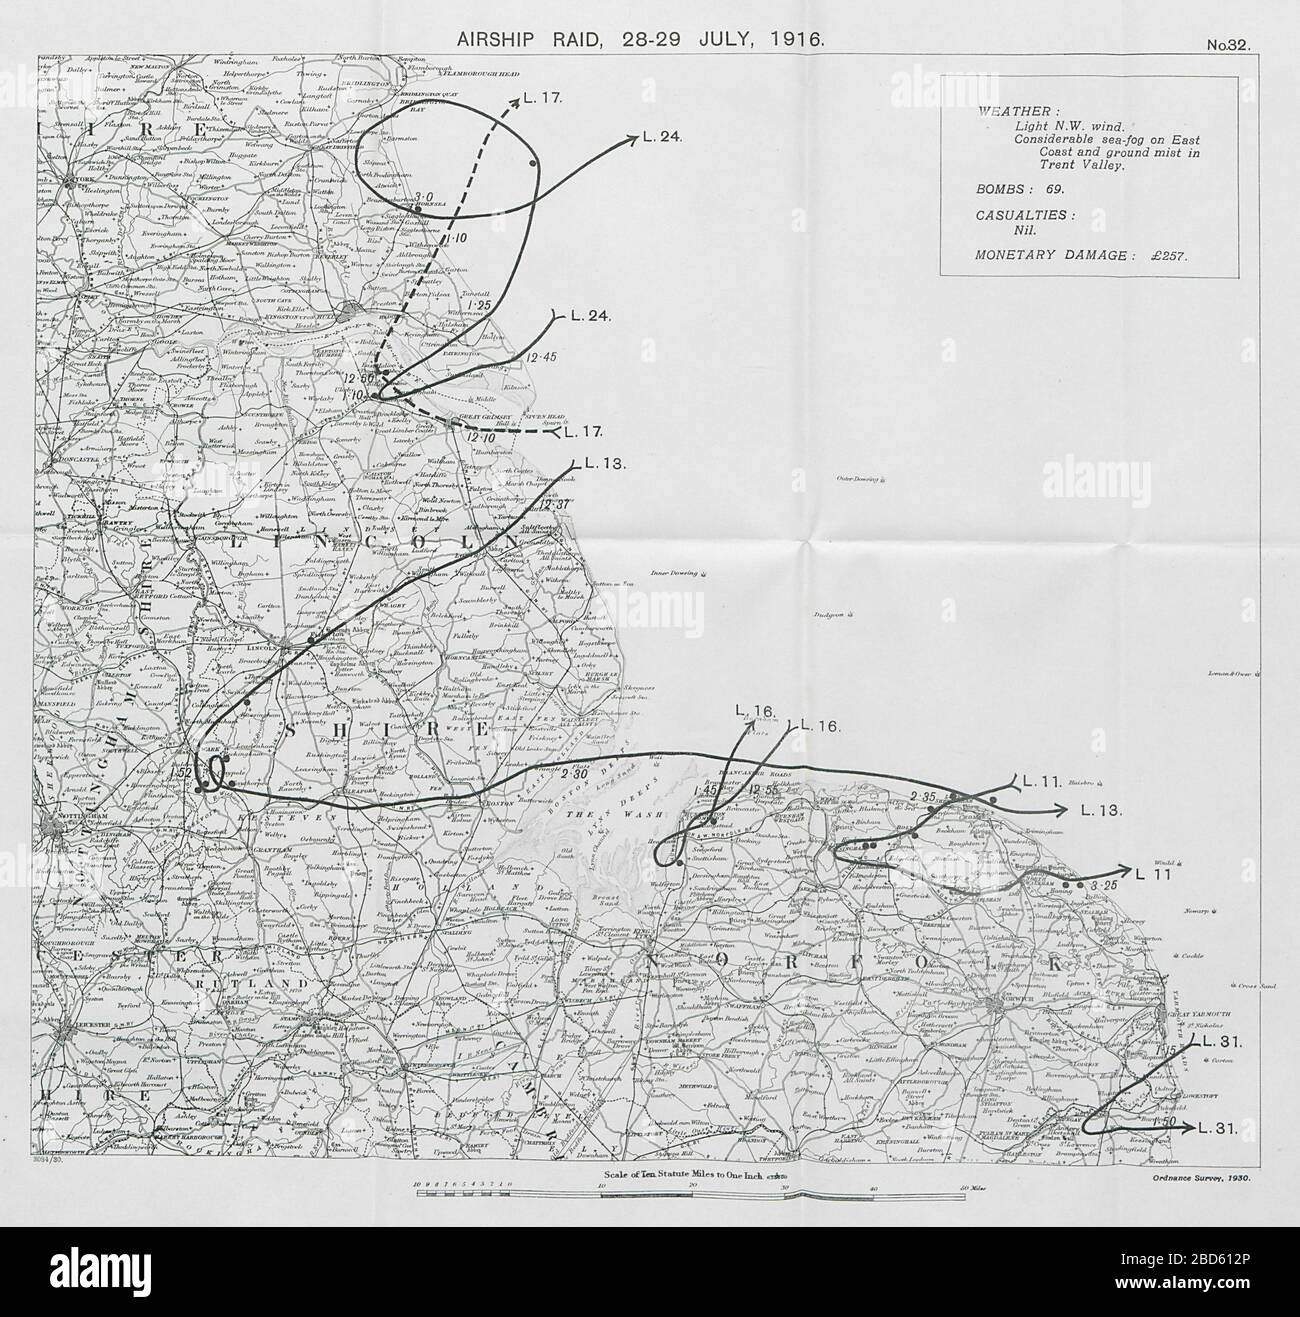 First World War German Airship raid 28-29 July 1916 Newark Lincoln Cromer Holt 1930 map Stock Photo